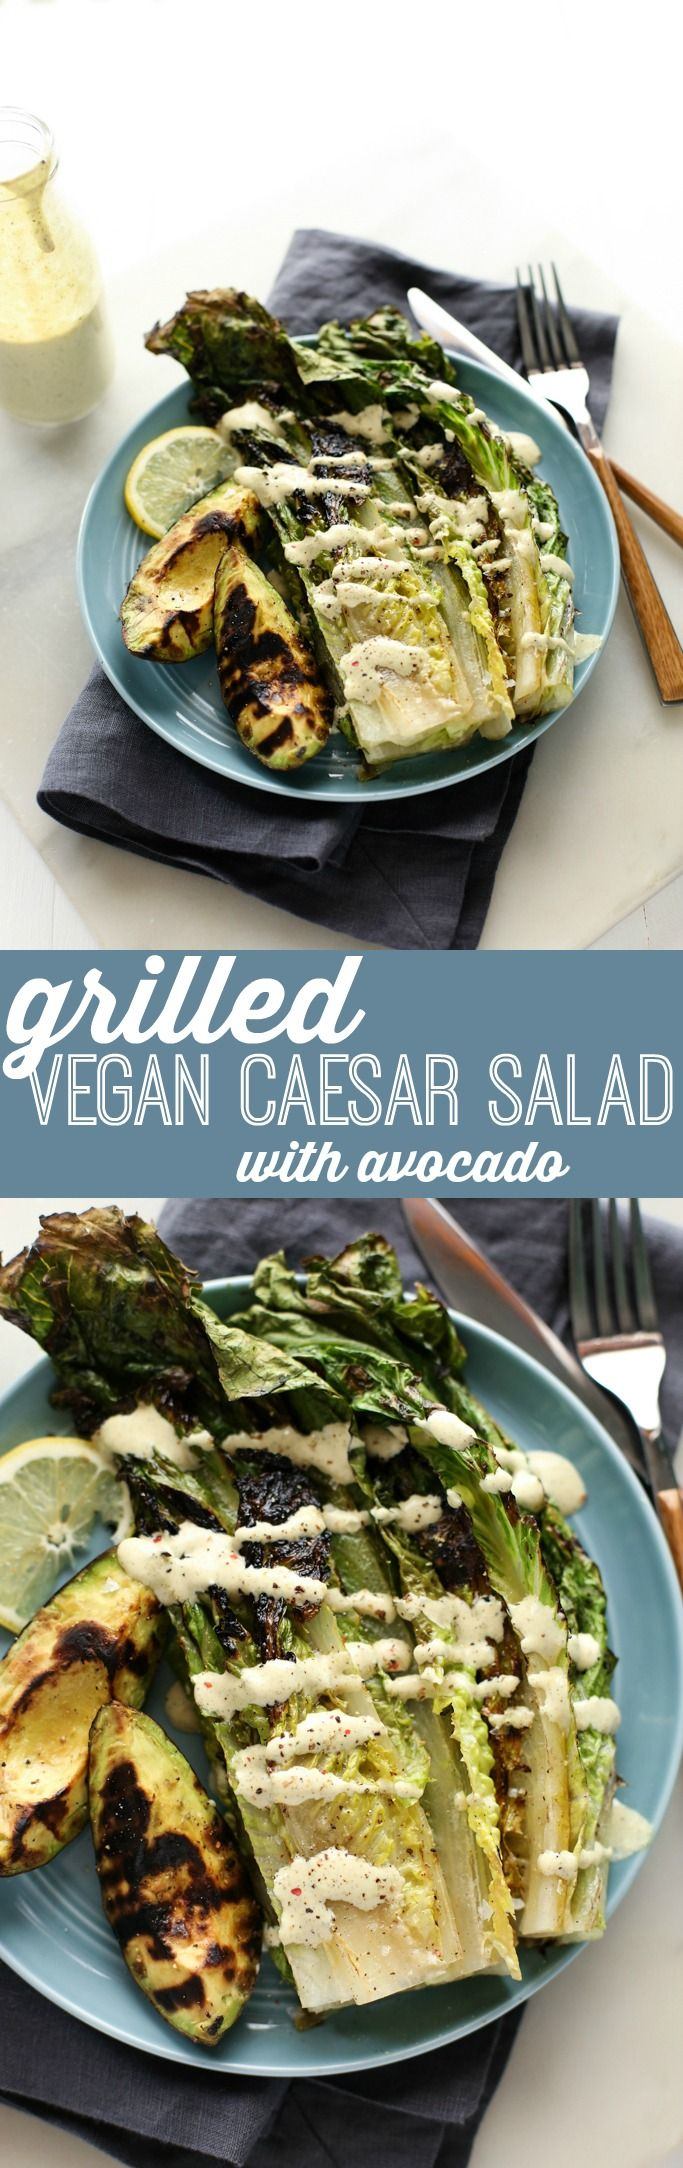 Grilled Vegan Caesar Salad with Avocado | Drizzled with garlicky, zesty, and ultra-creamy nut-free caesar dressing!